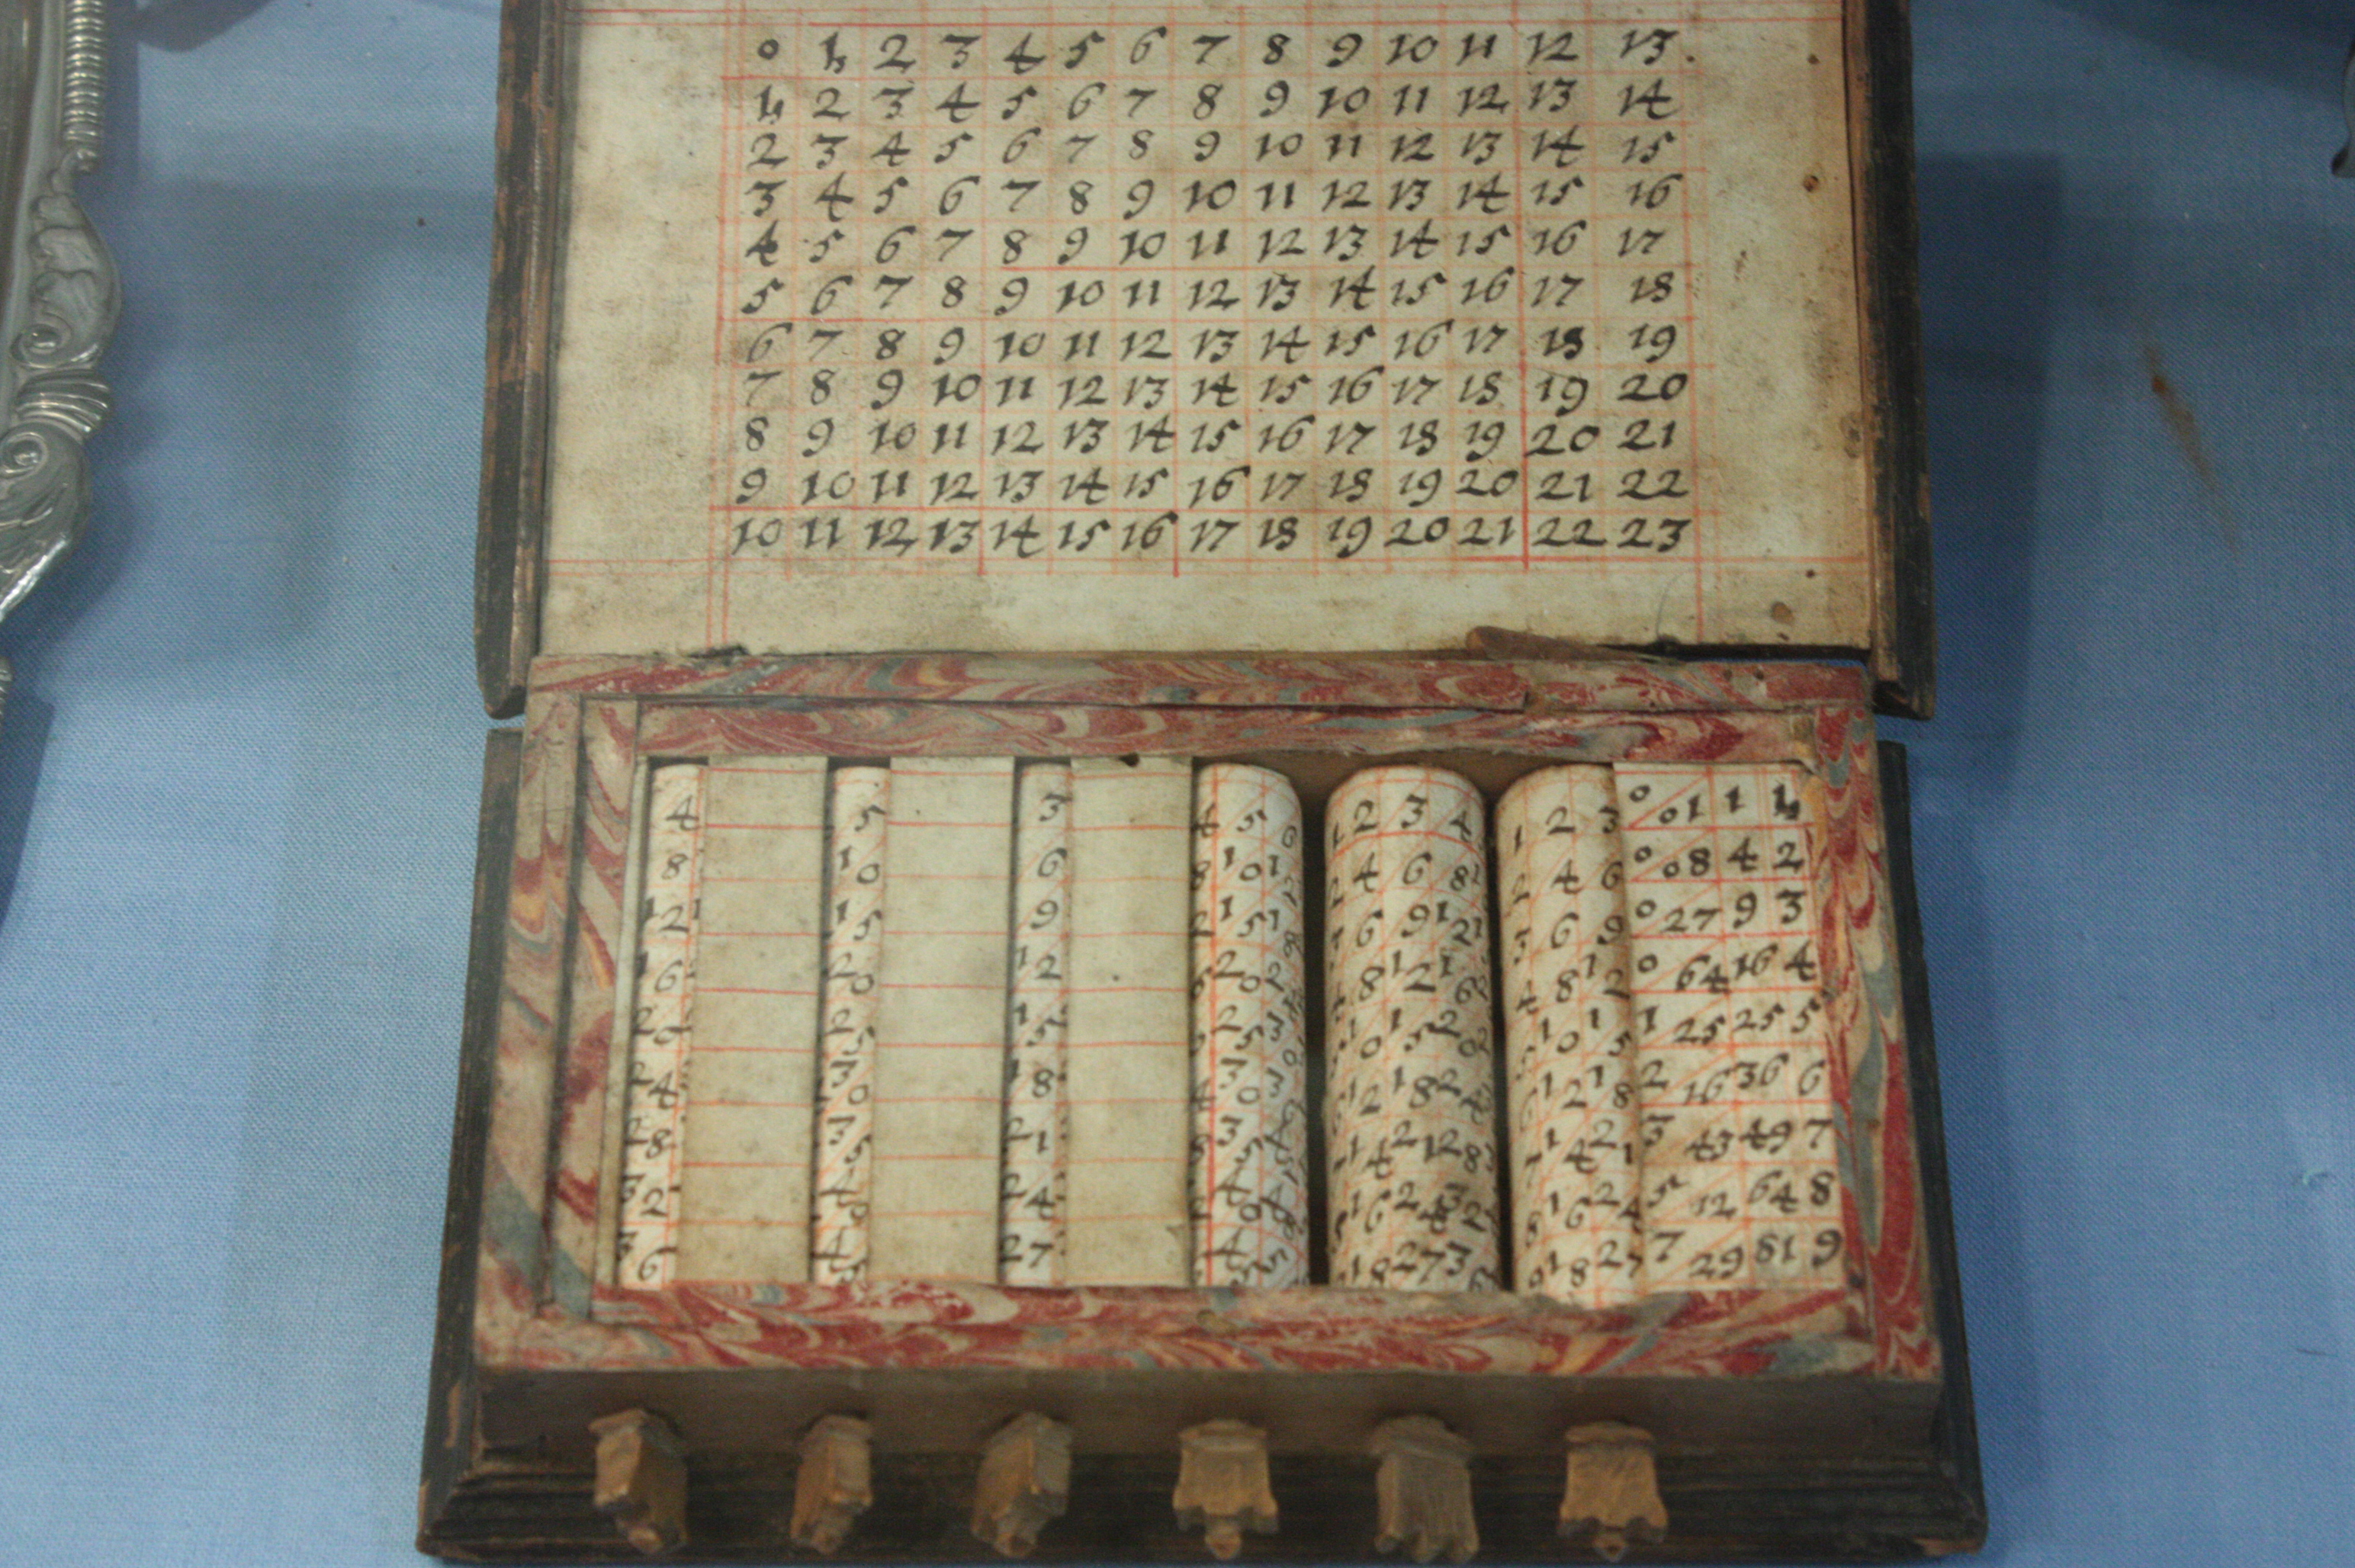 Multiplication Table Chart: Napier7s bones - Wikipedia,Chart